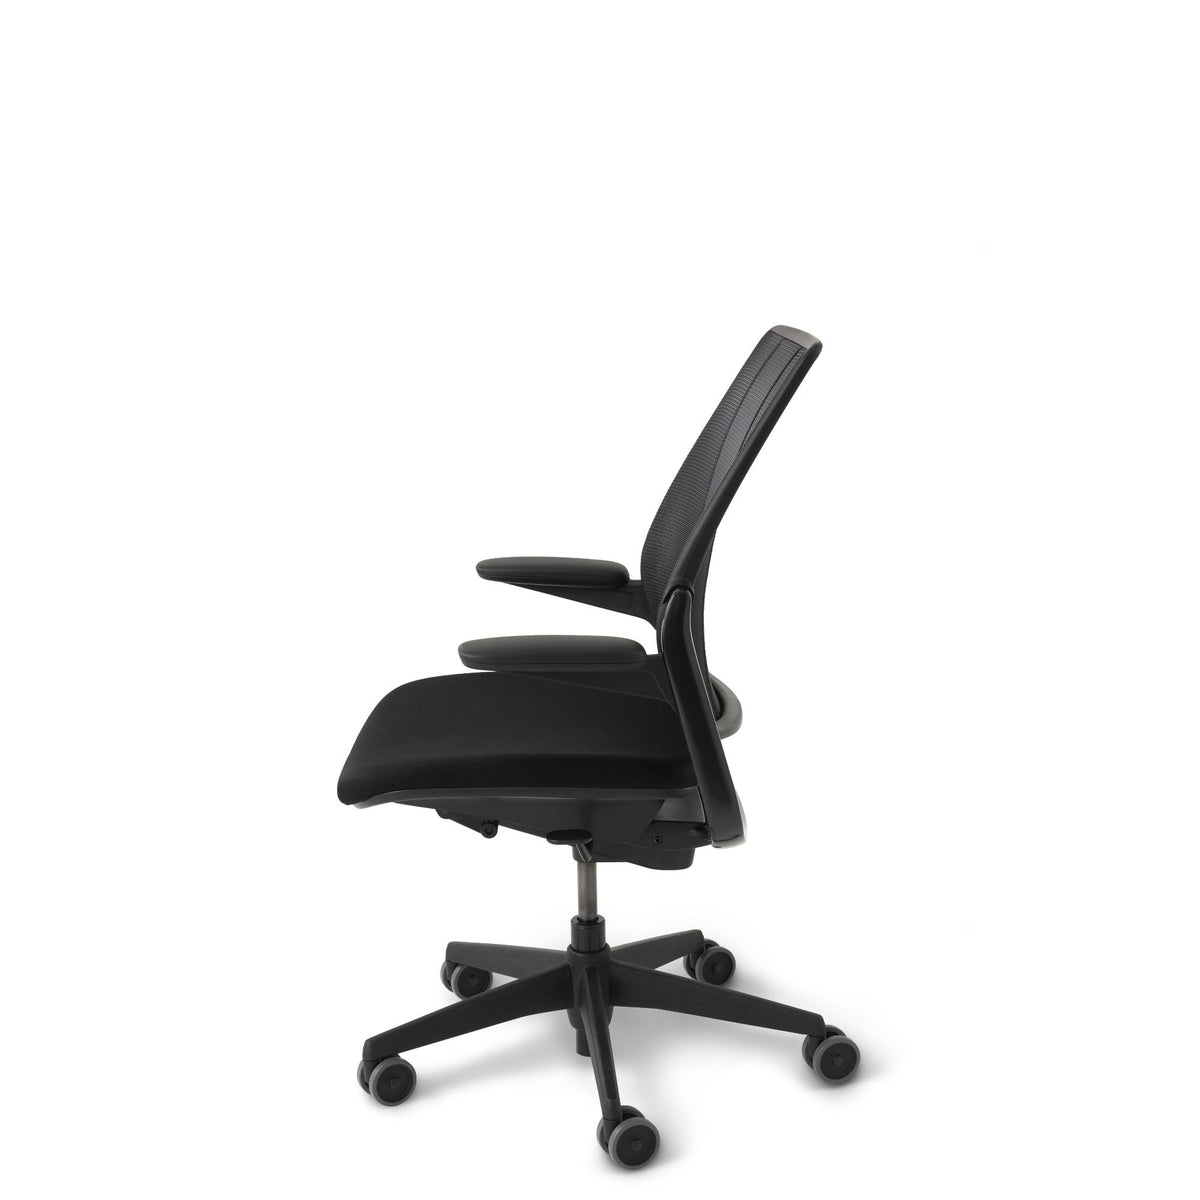 Humanscale Office Black Smart Ocean Task Chair